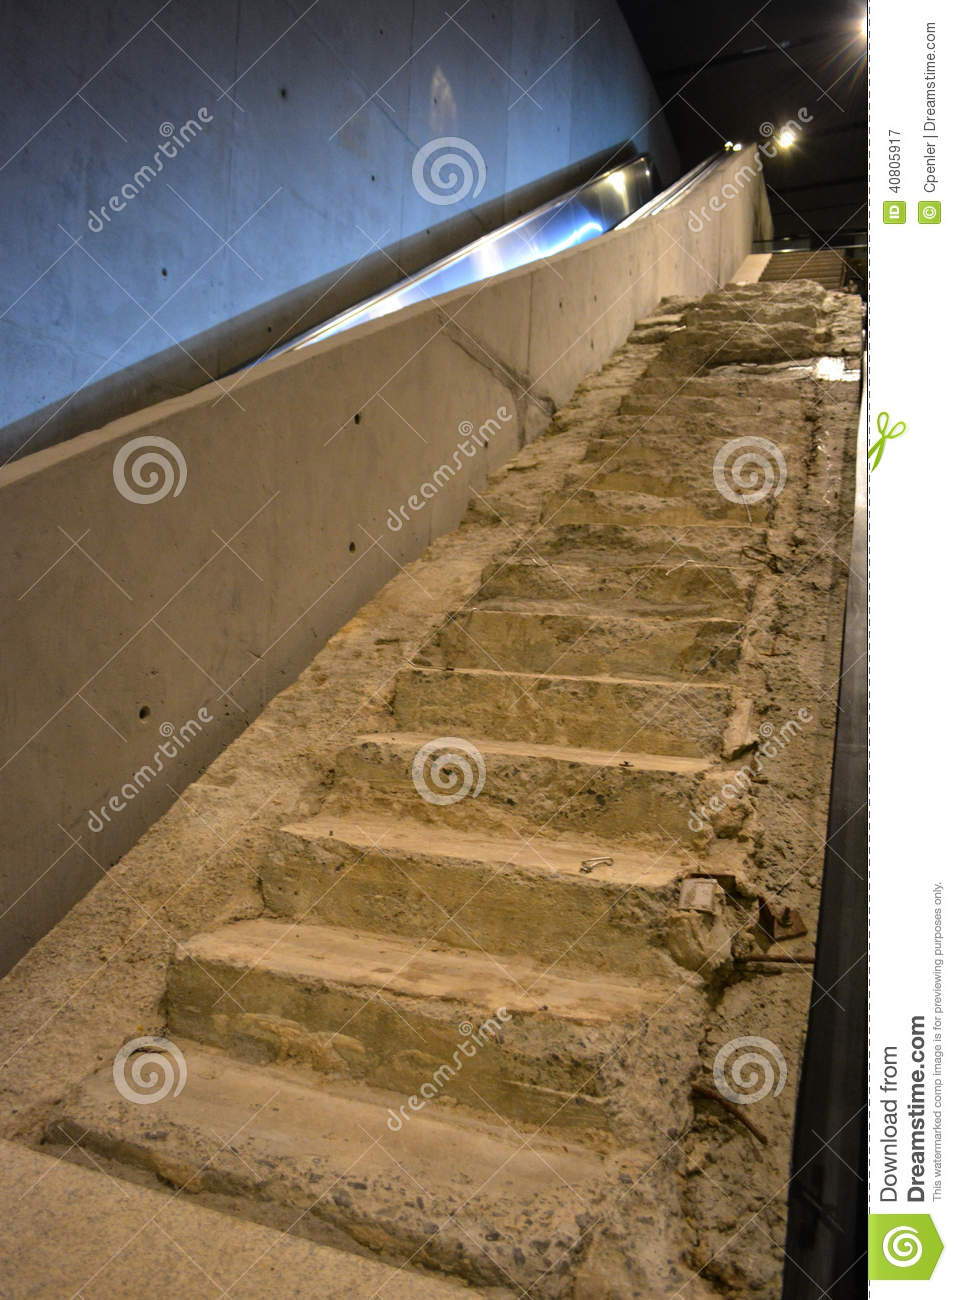 The survivor stairs from the original twin towers on display at the